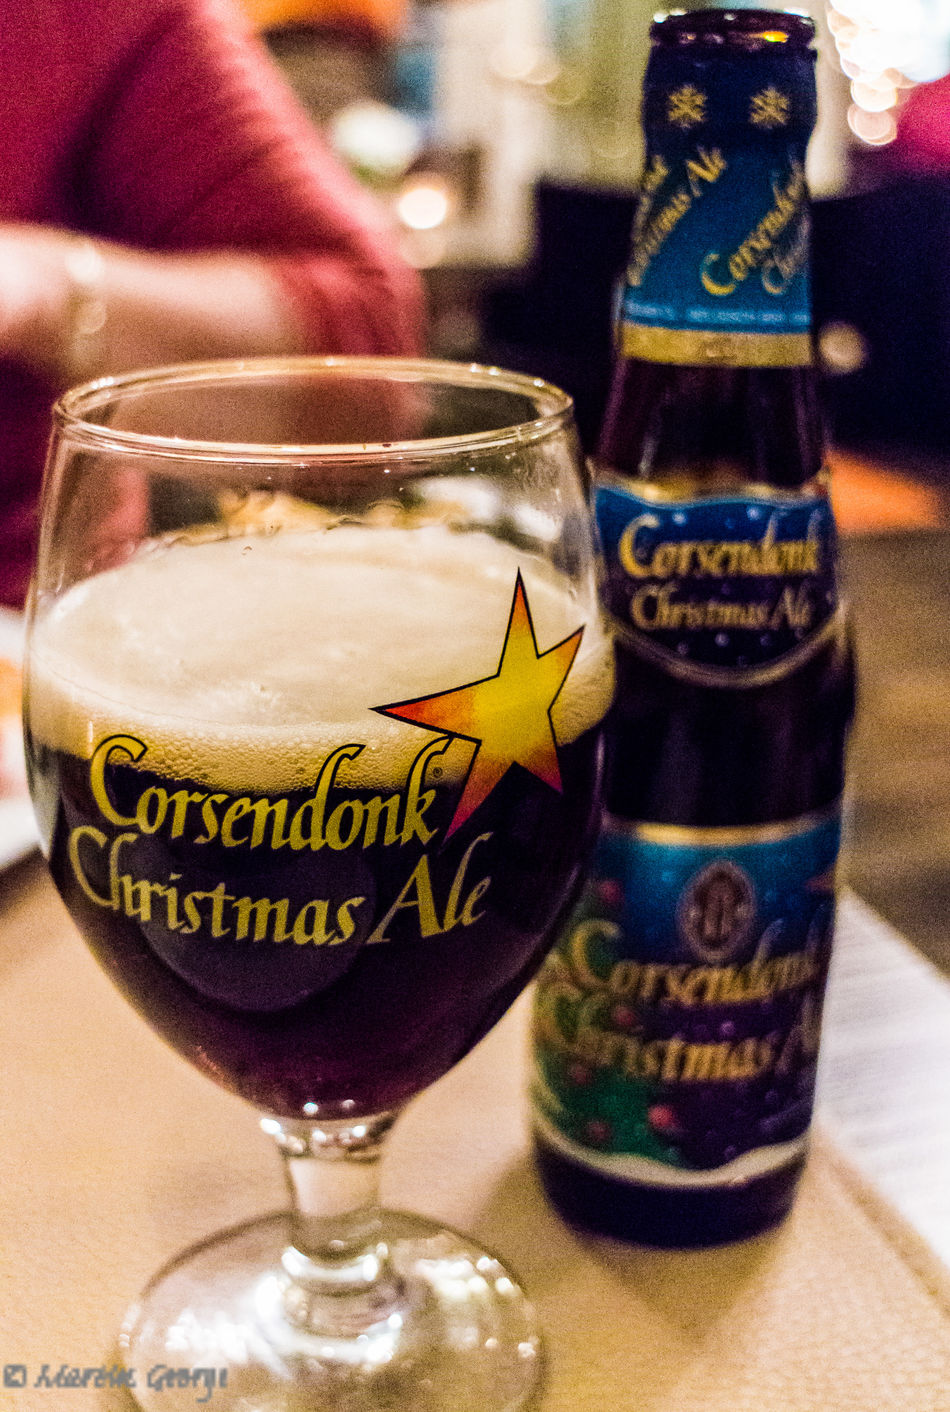 Belgium Brugge, Belgium Celebration Christmas Christmas Ale Christmas Beer Close-up Drink Food And Drink Refreshment Still Life Table The Culture Of The Holidays